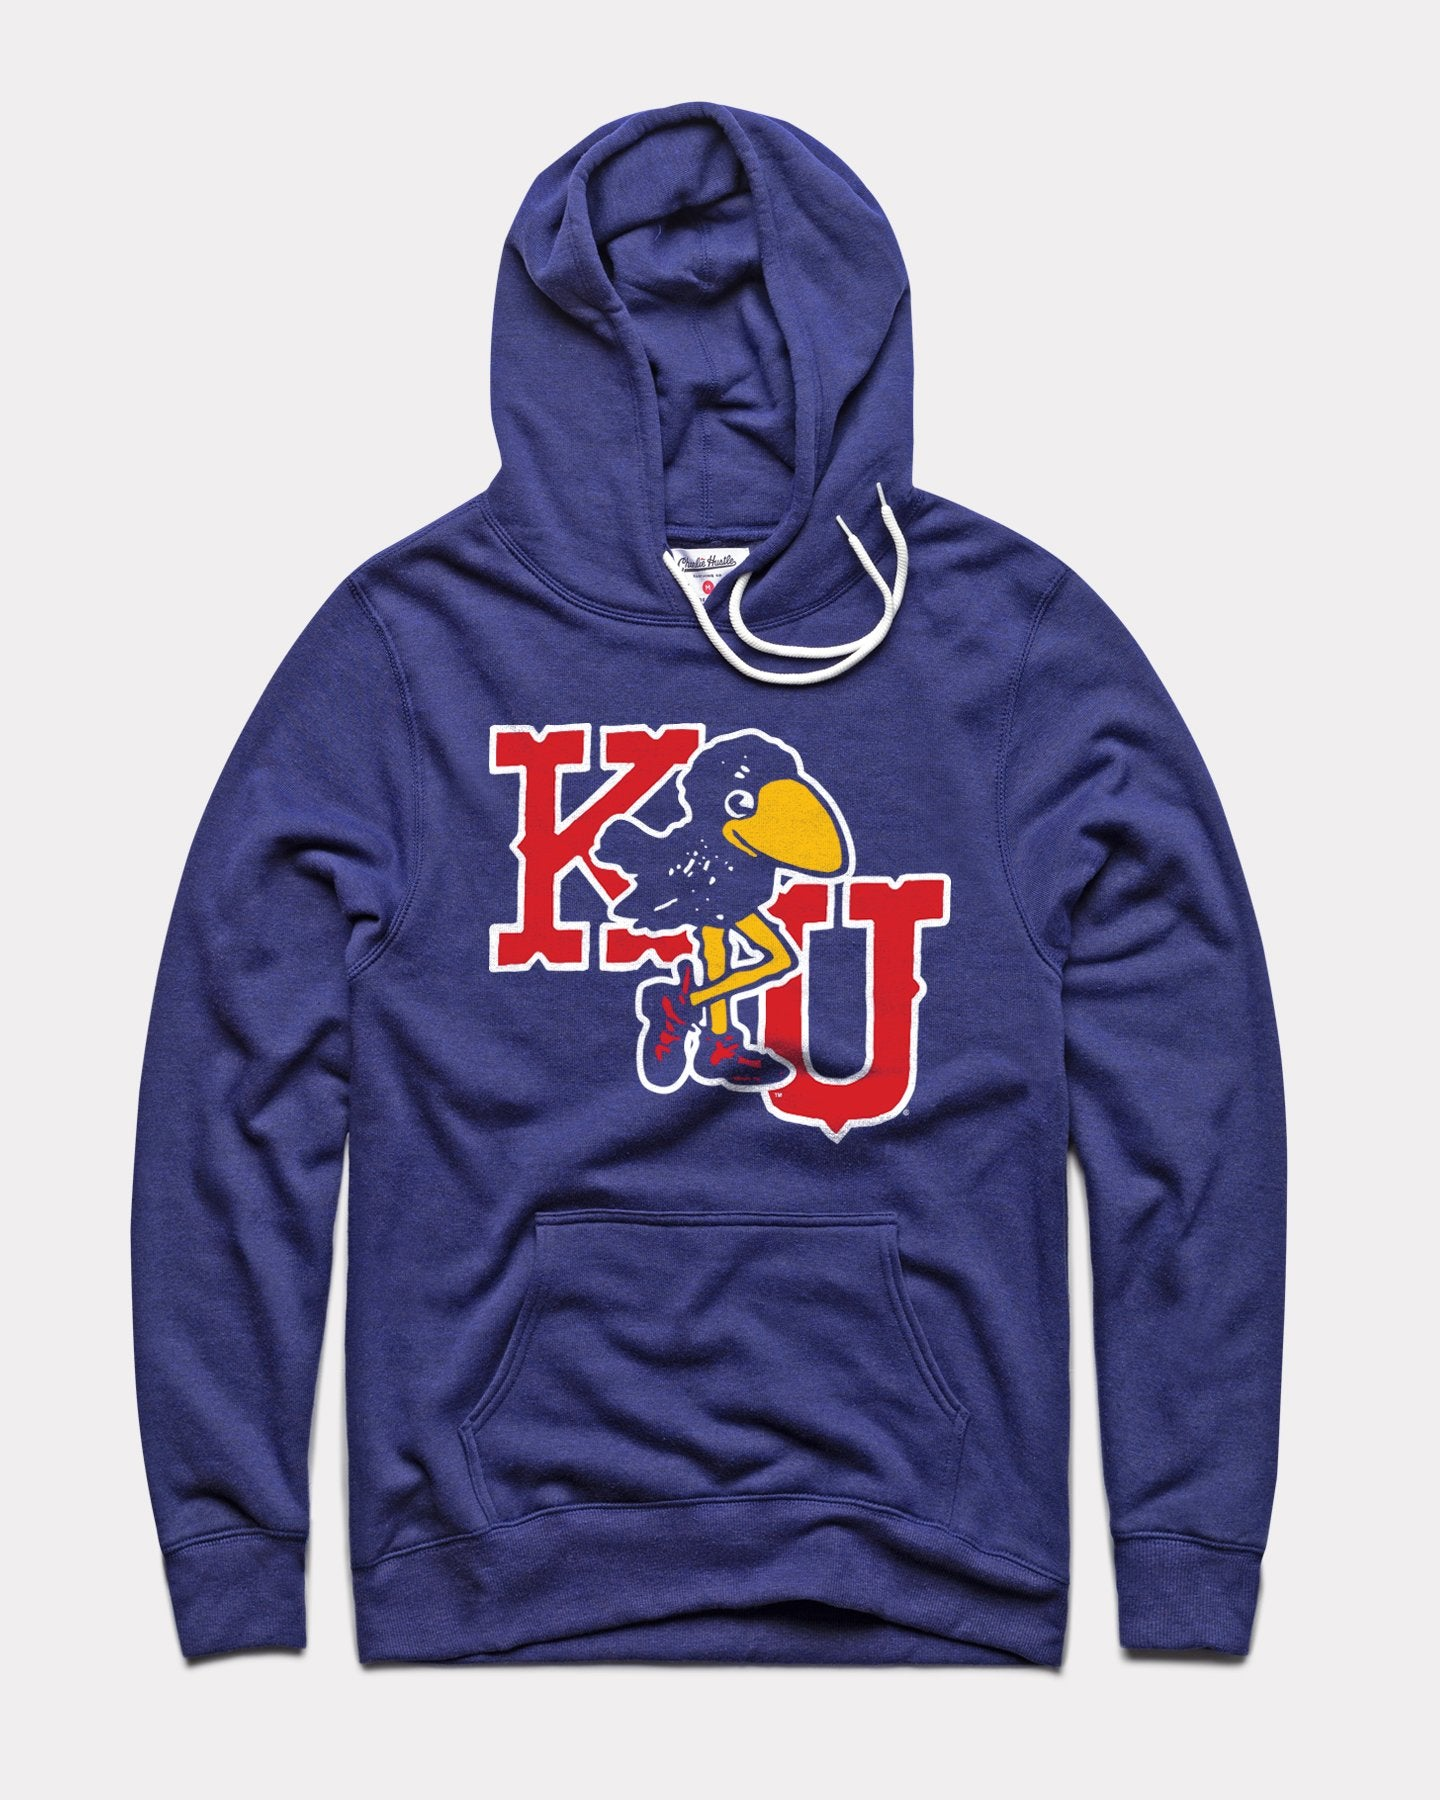 Navy Kansas Marching Jayhawks Vintage Hoodie Sweatshirt